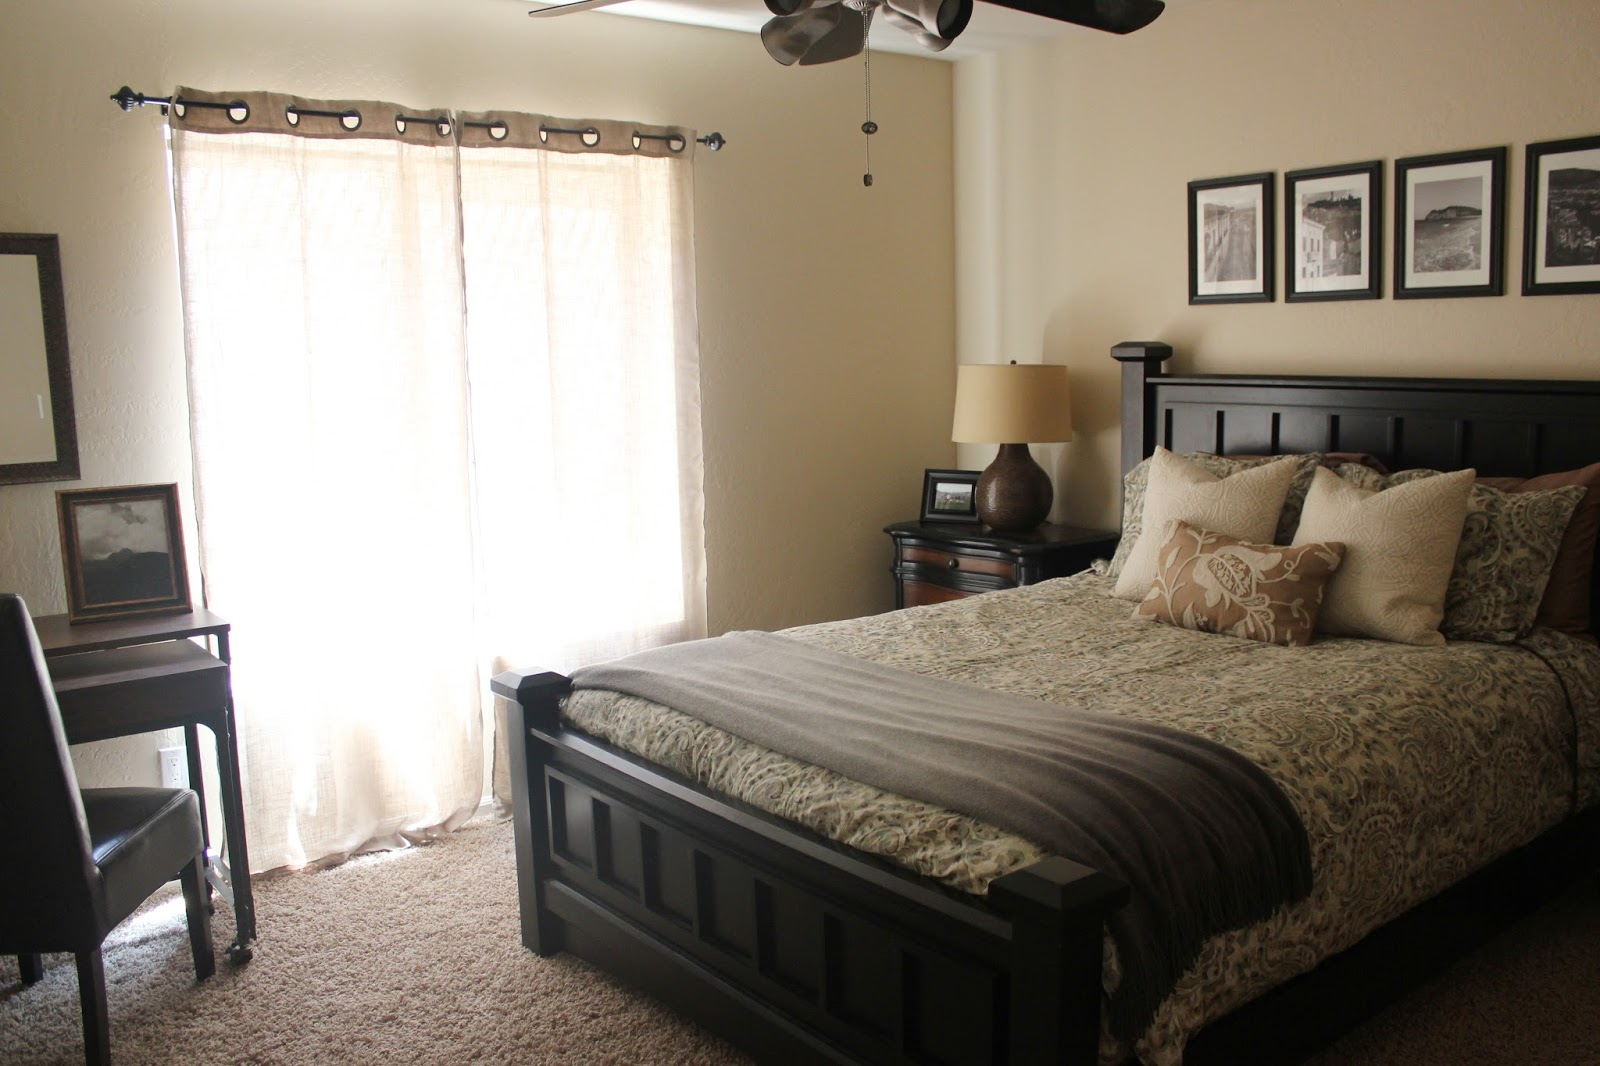 Redesign Bedroom Ideas Designs From Home Bedroom Redesign